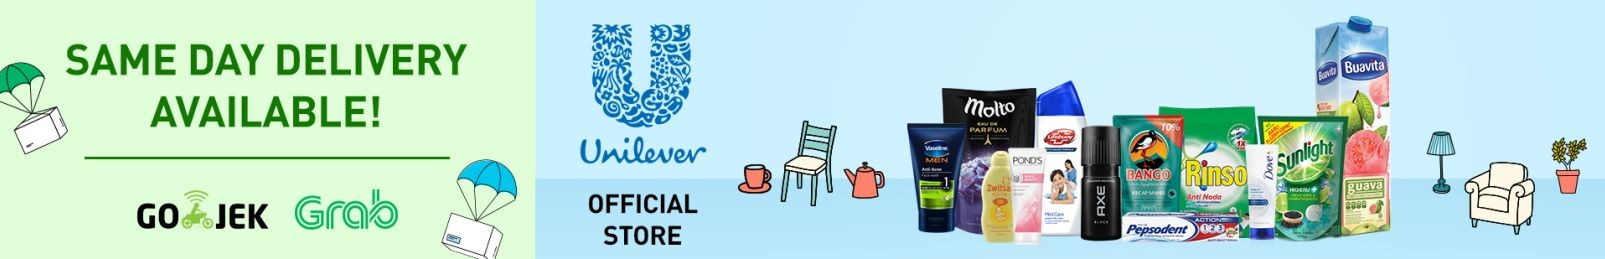 Unilever Official Store